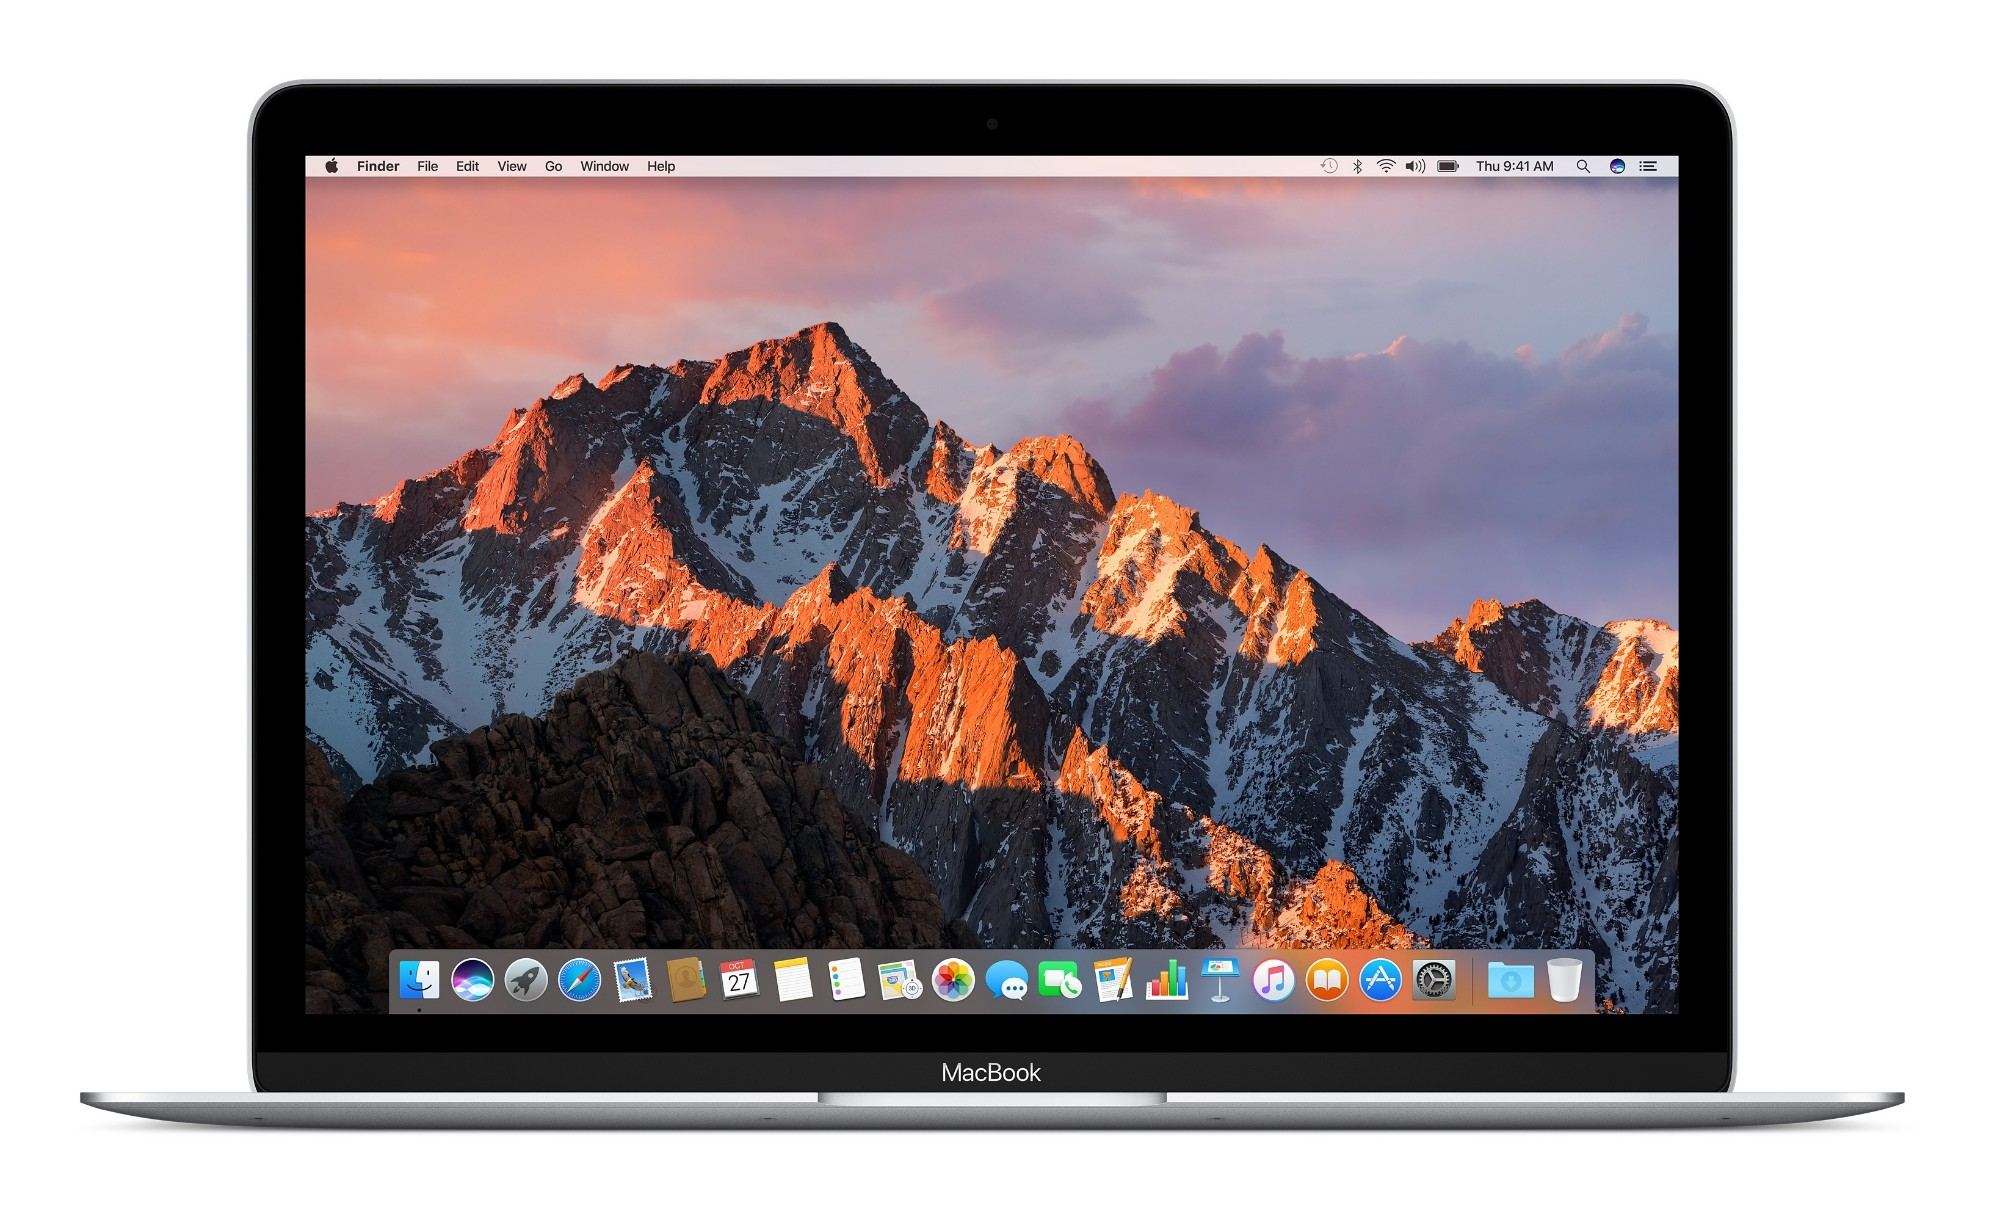 MacBook i5 512GB 8GB 12in Noopt Ios Uk